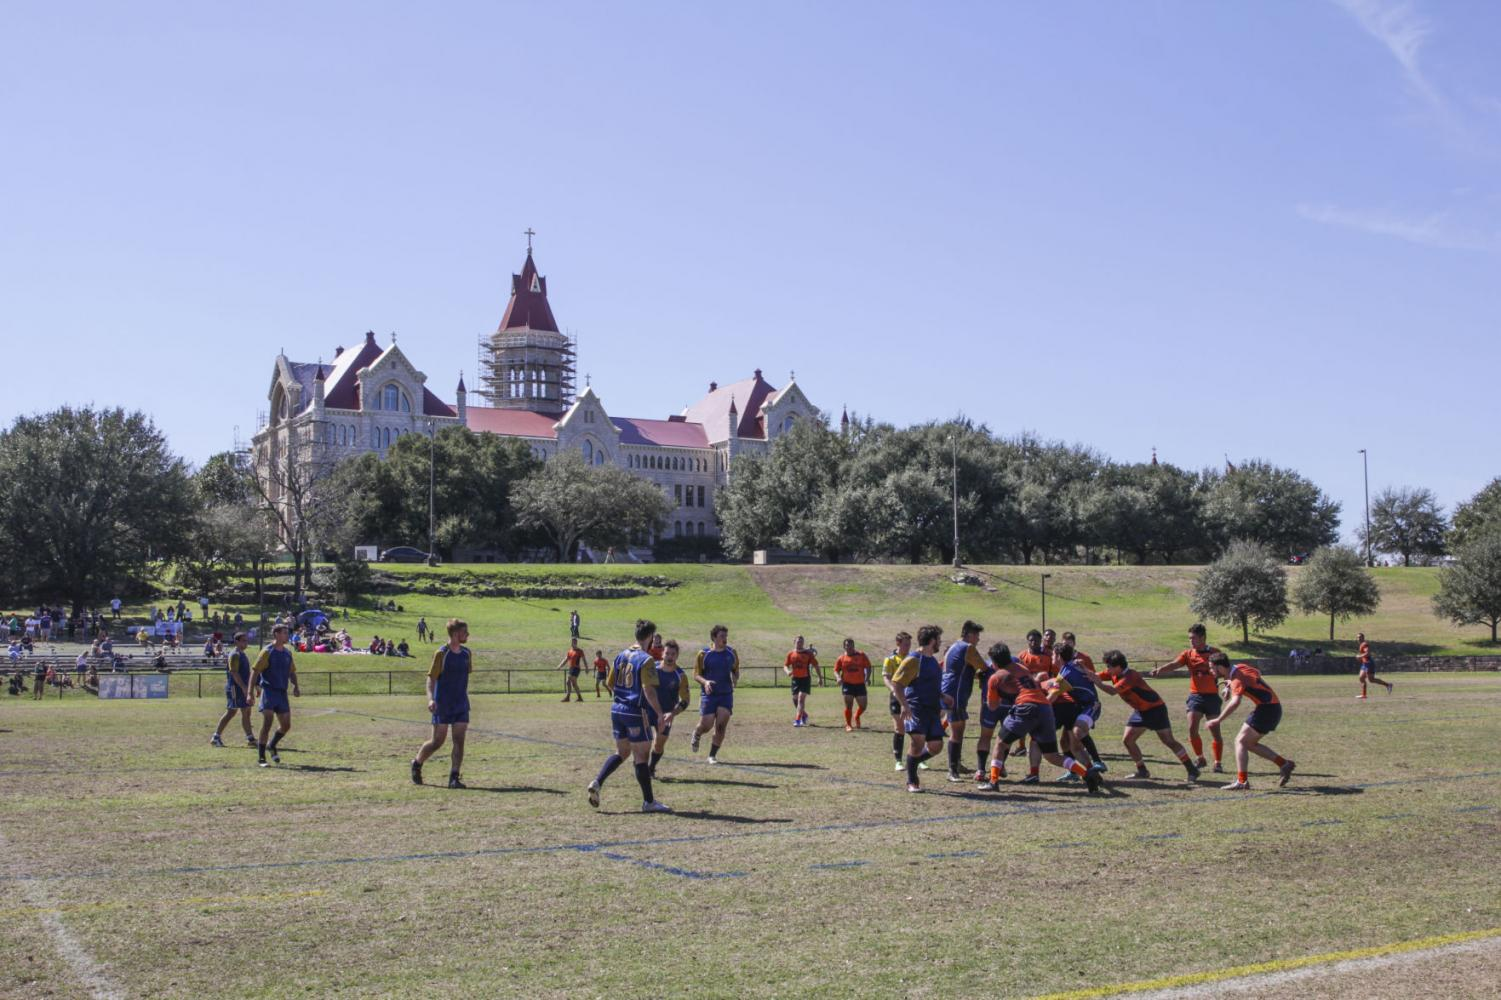 Pictured: The rugby team played on campus during Homecoming & Family Weekend Feb. 18.